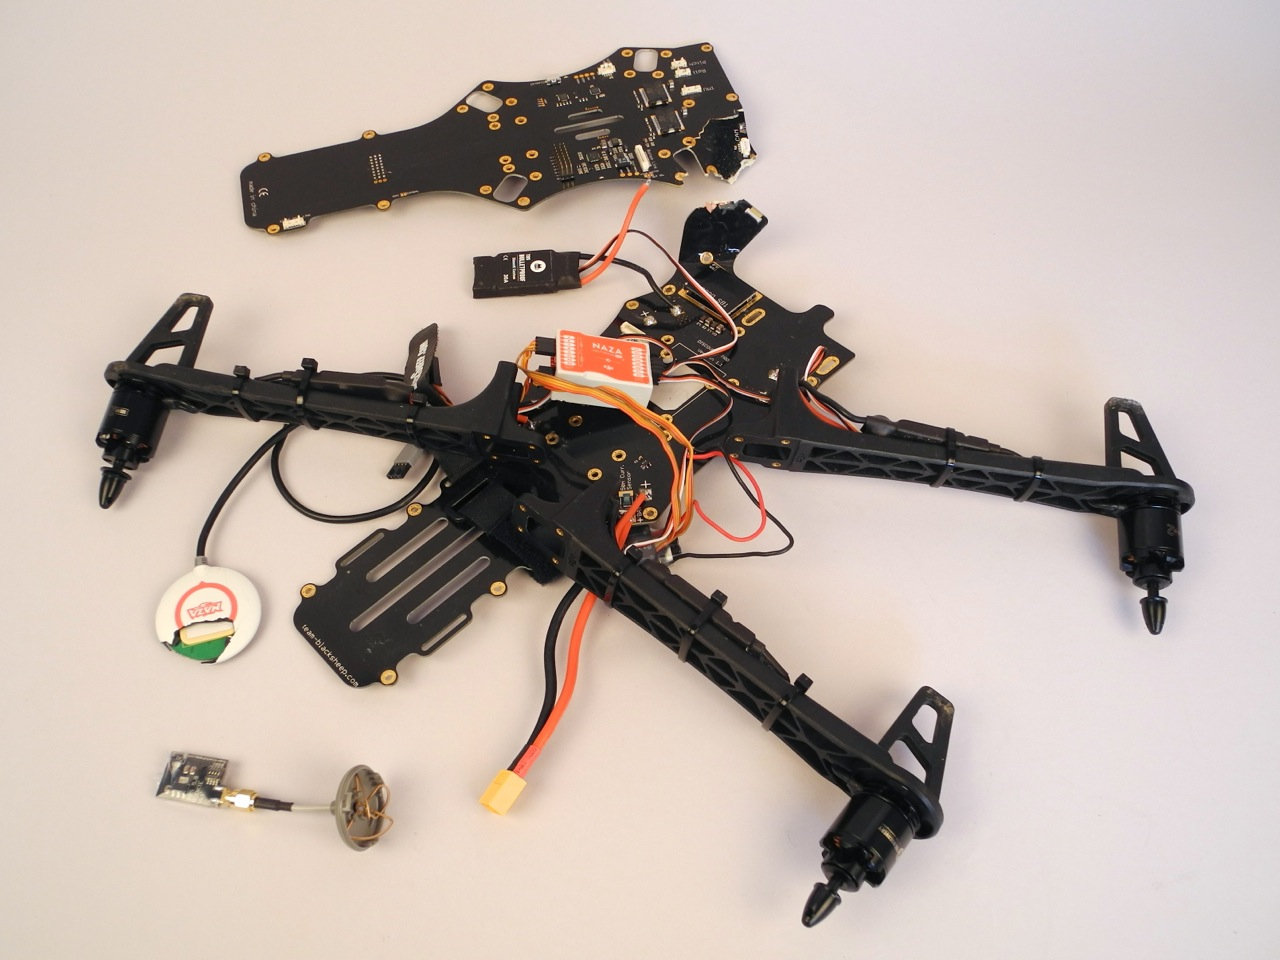 Some recovered parts after a crash. The copter fell apart, lost one arm and scattered into peaces.